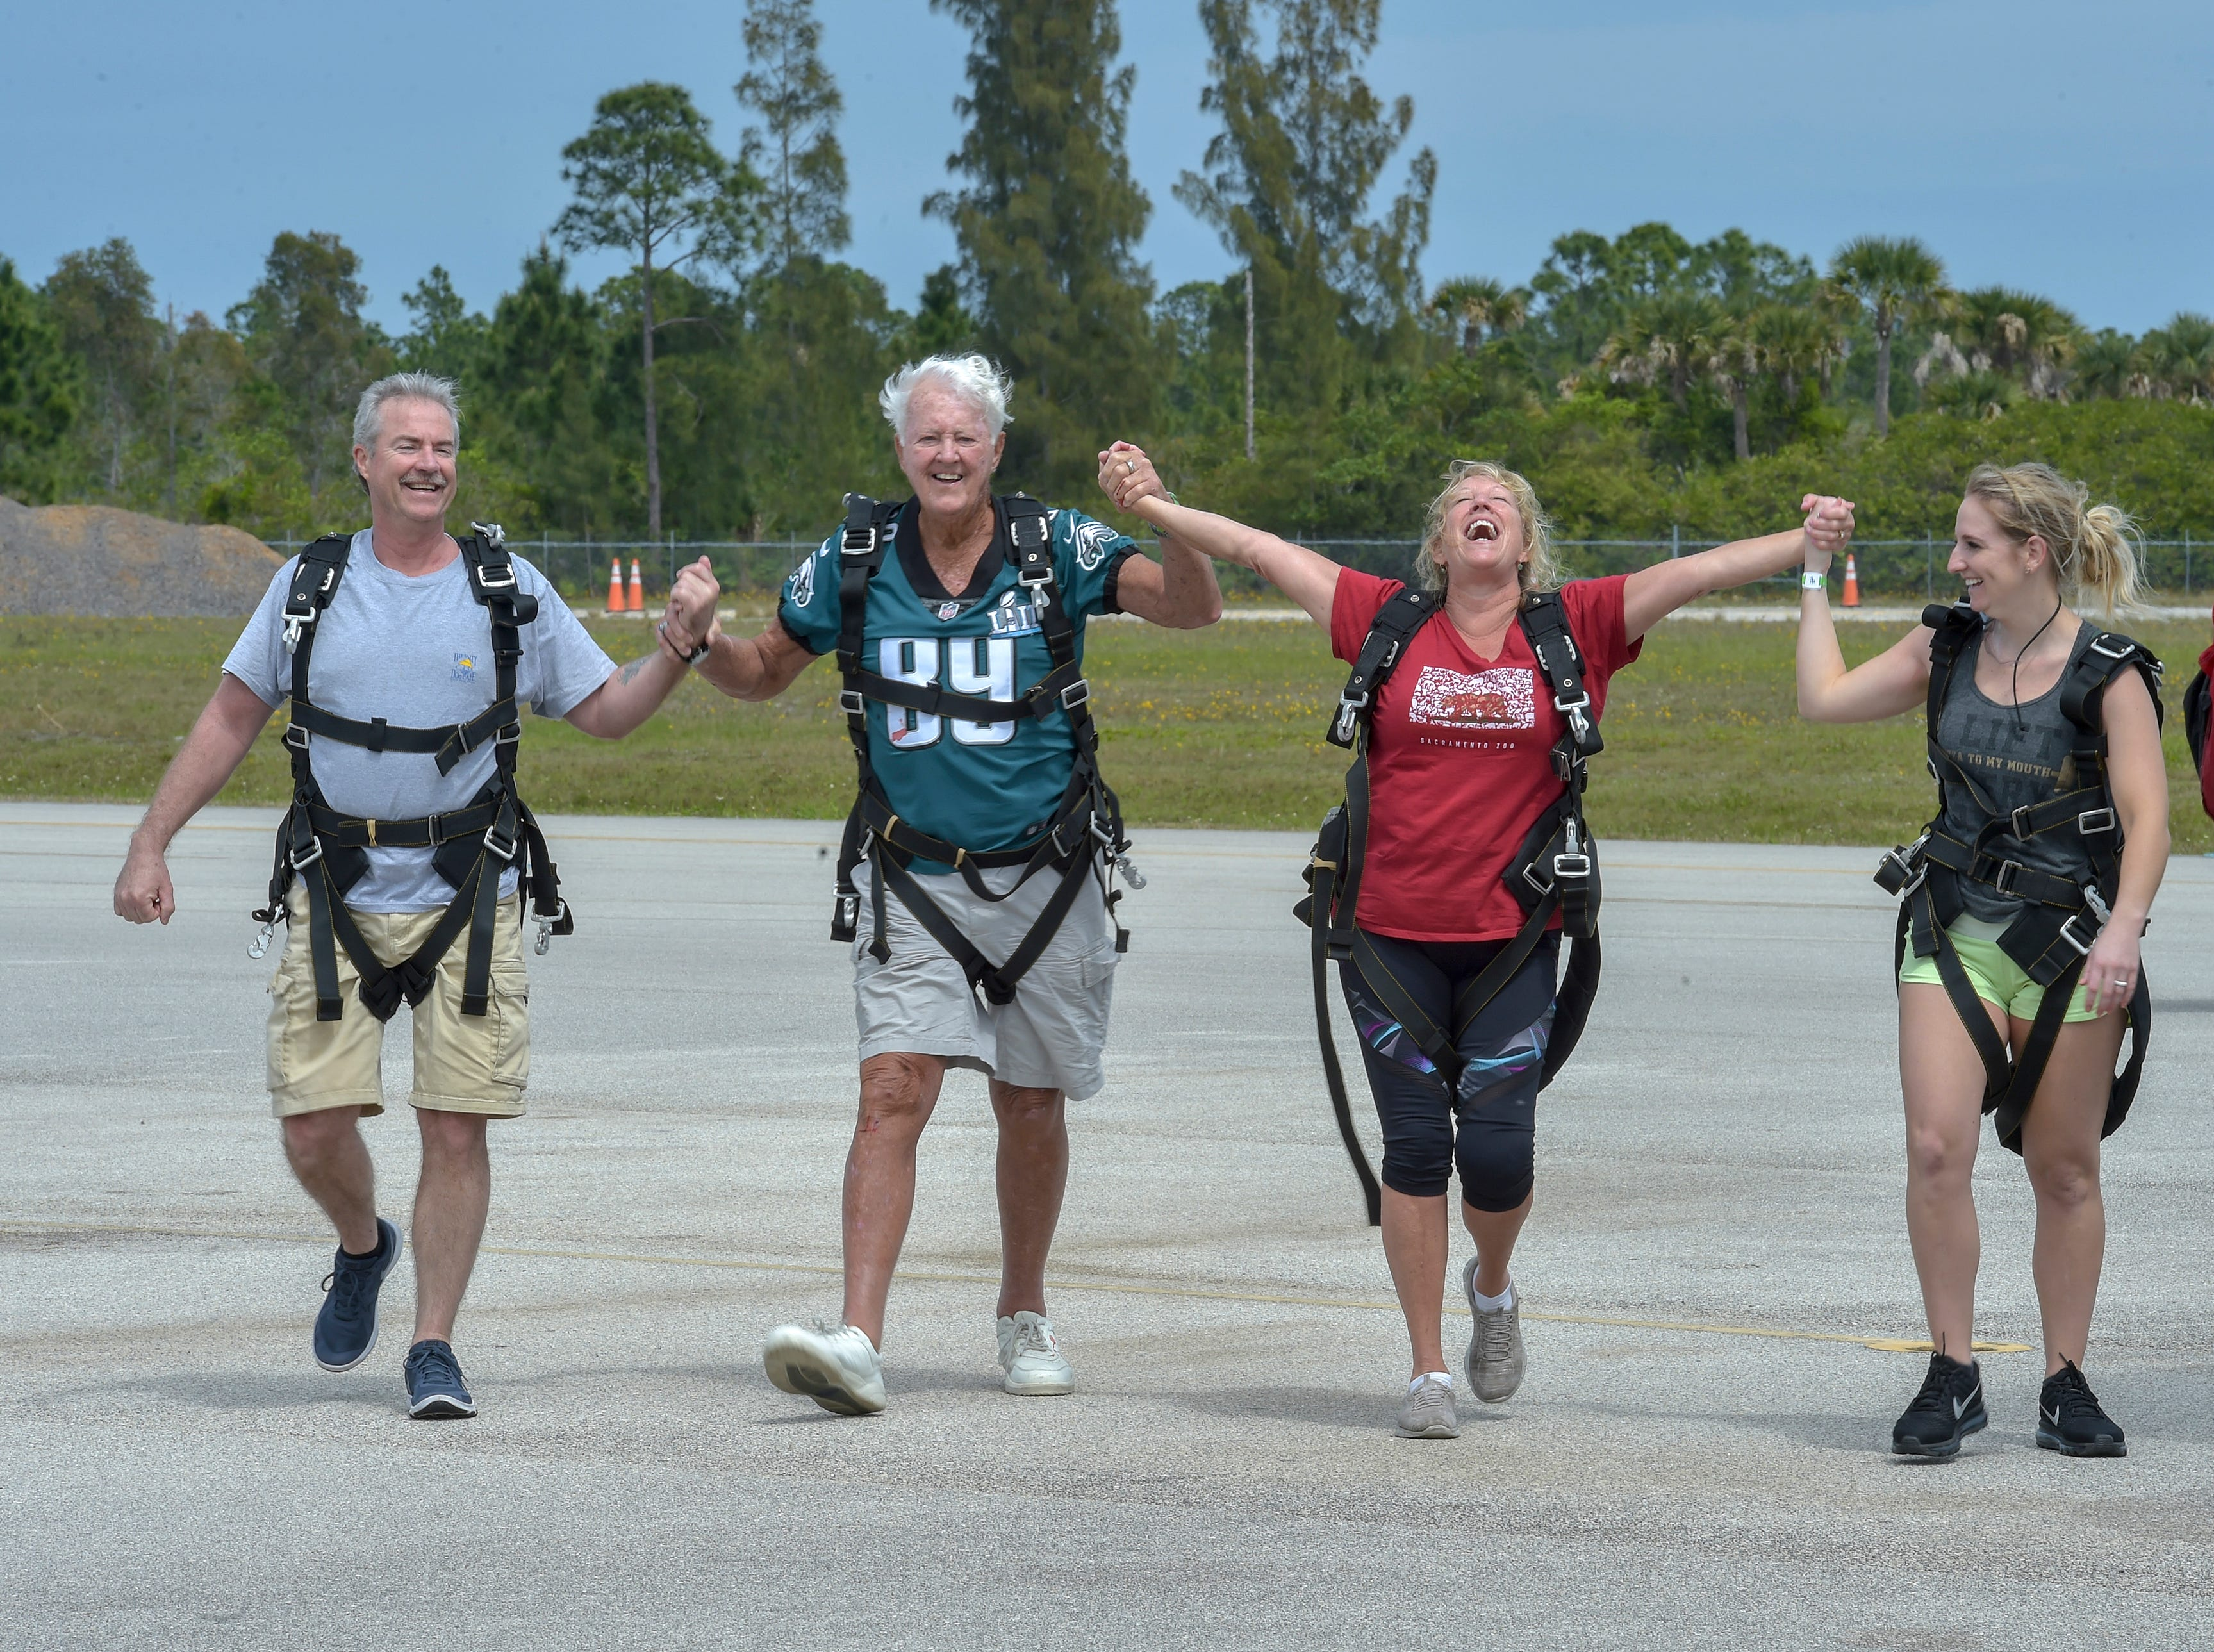 """Jack Grimner (second from left) a Port St. Lucie and St. Petersburg snowbird from Philadelphia, celebrate a successful skydive with (from left) his nephew Tom Grimmer, from Philadelphia, daughter Regina Grimner Robsahm, of Los Angelos, and great niece Kellie Grimner Mastria, of Montgomery County Pennsylvania, on Sunday, March 17, 2019, at Skydive Sebastian. Jack Grimner, a Philadelphia Eagles fan, made the jump to celebrate his 90th birthday on Saint Patrick's day, along with family members. """"President [H.W.] Bush did it, and I figured if he has enough nerve to do, it I certainly have,"""" Grimner said. """"So today is my 90th birthday and it's my bucket list idea to go."""" Grimner served in the U.S. Air Force as a lieutenant in the Air Defense Command."""